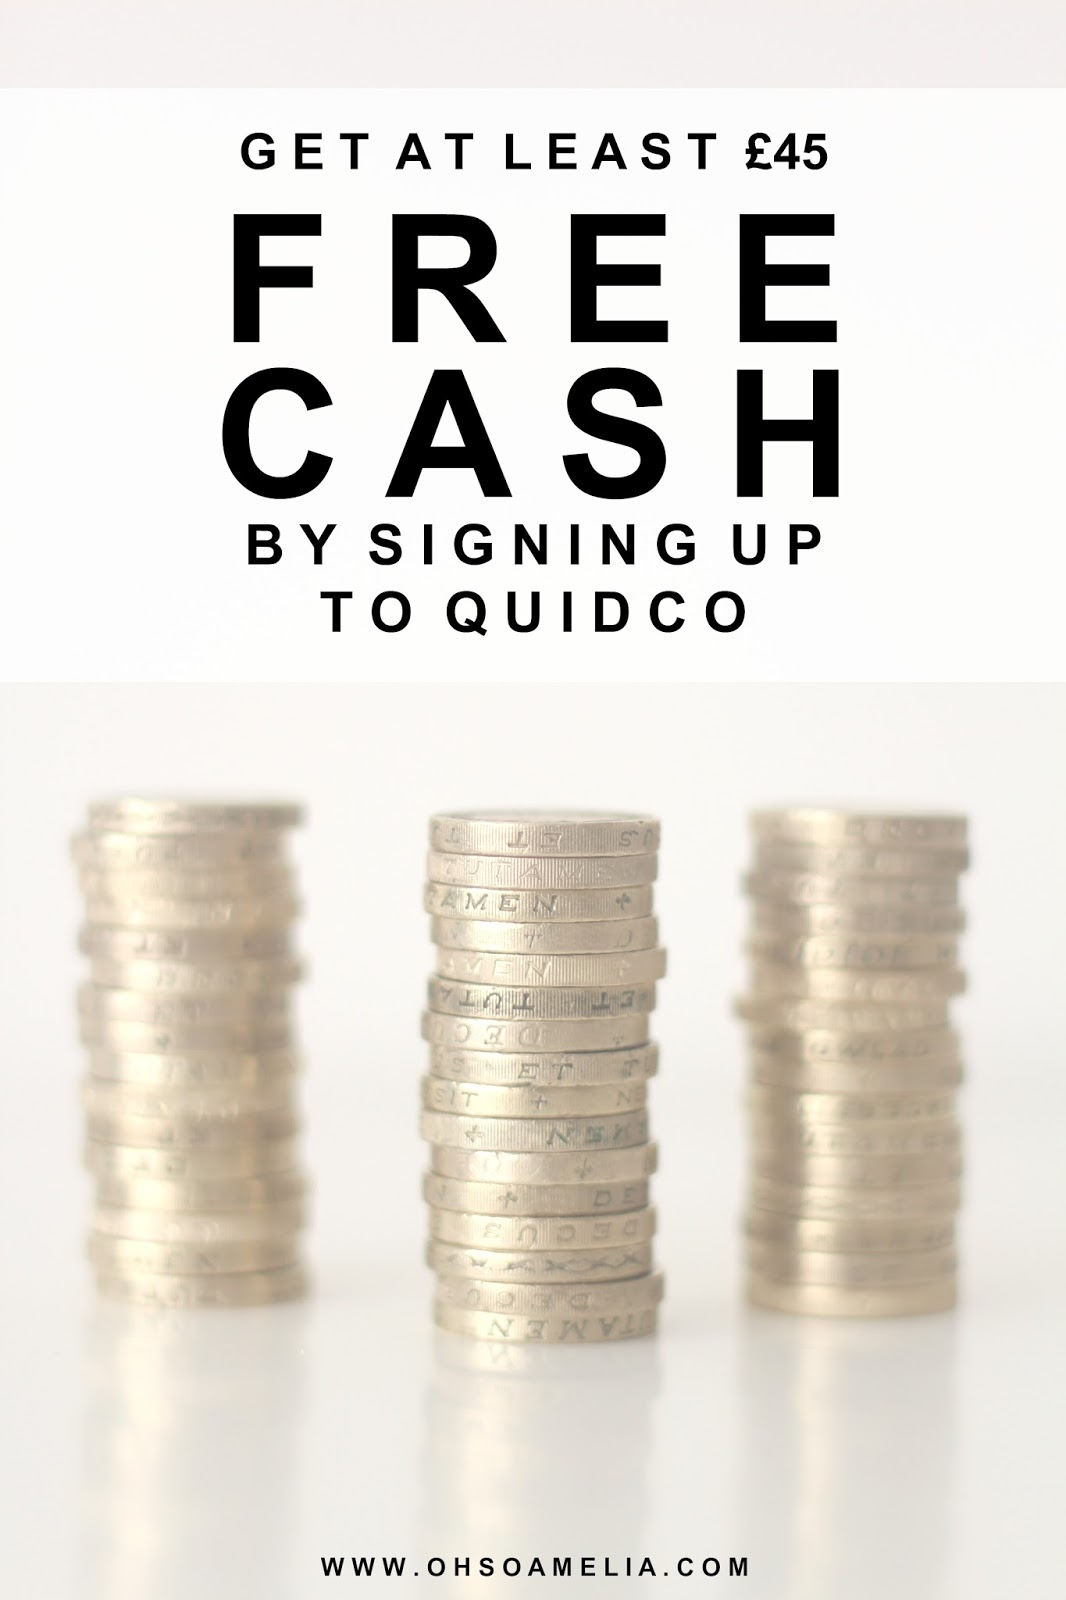 Get At Least £45 FREE CASH By Signing Up To Quidco.com